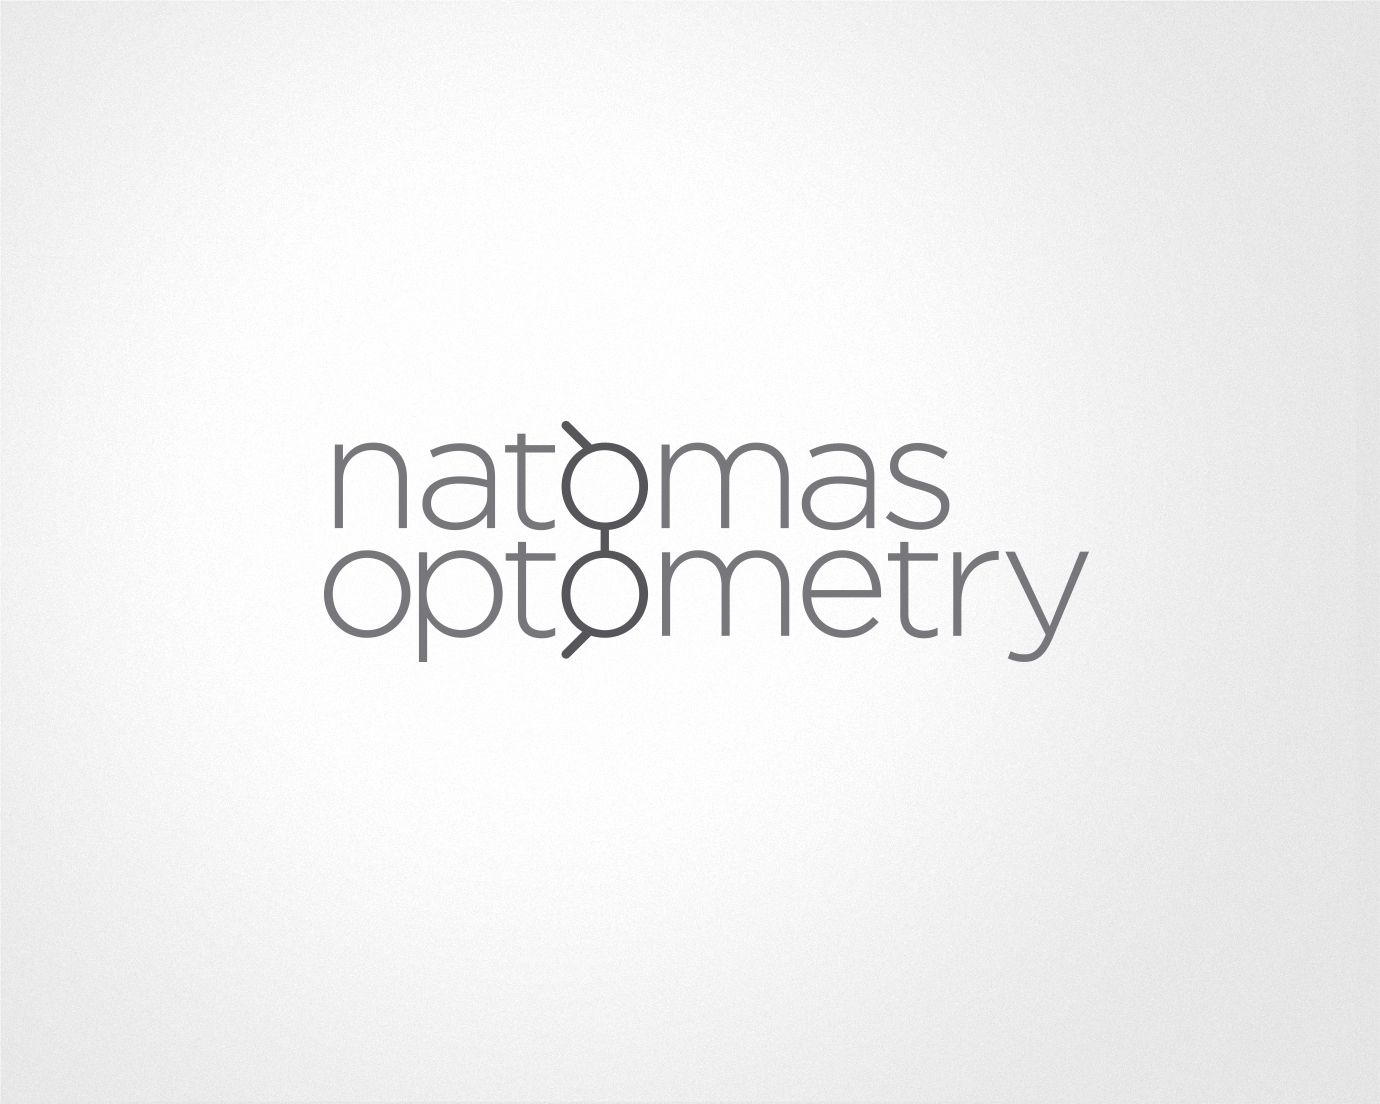 Logo Design for Optometry Office   Optometrist Office SacramentoLogo Design for Optometry Office   Optometrist Office Sacramento  . Optometry Office Design Services. Home Design Ideas